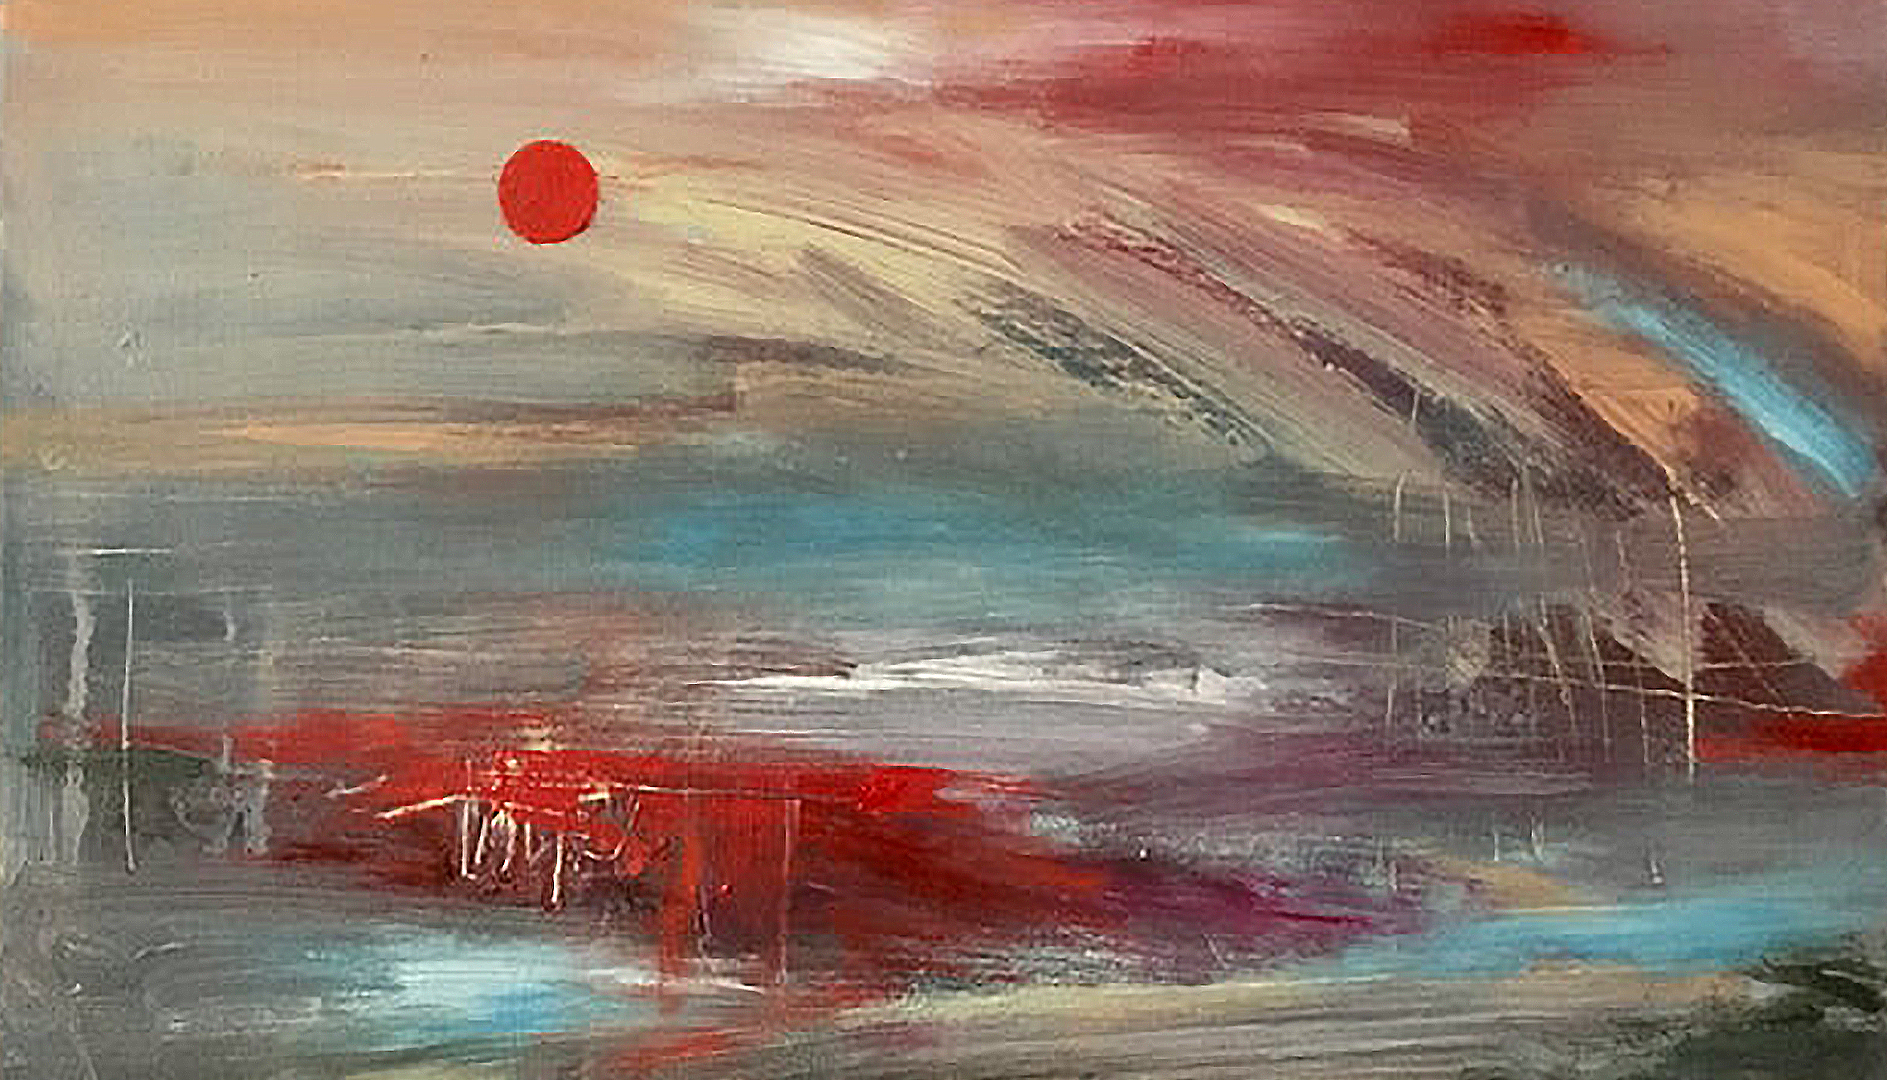 Seascape with Red Sun by Matt James Healey